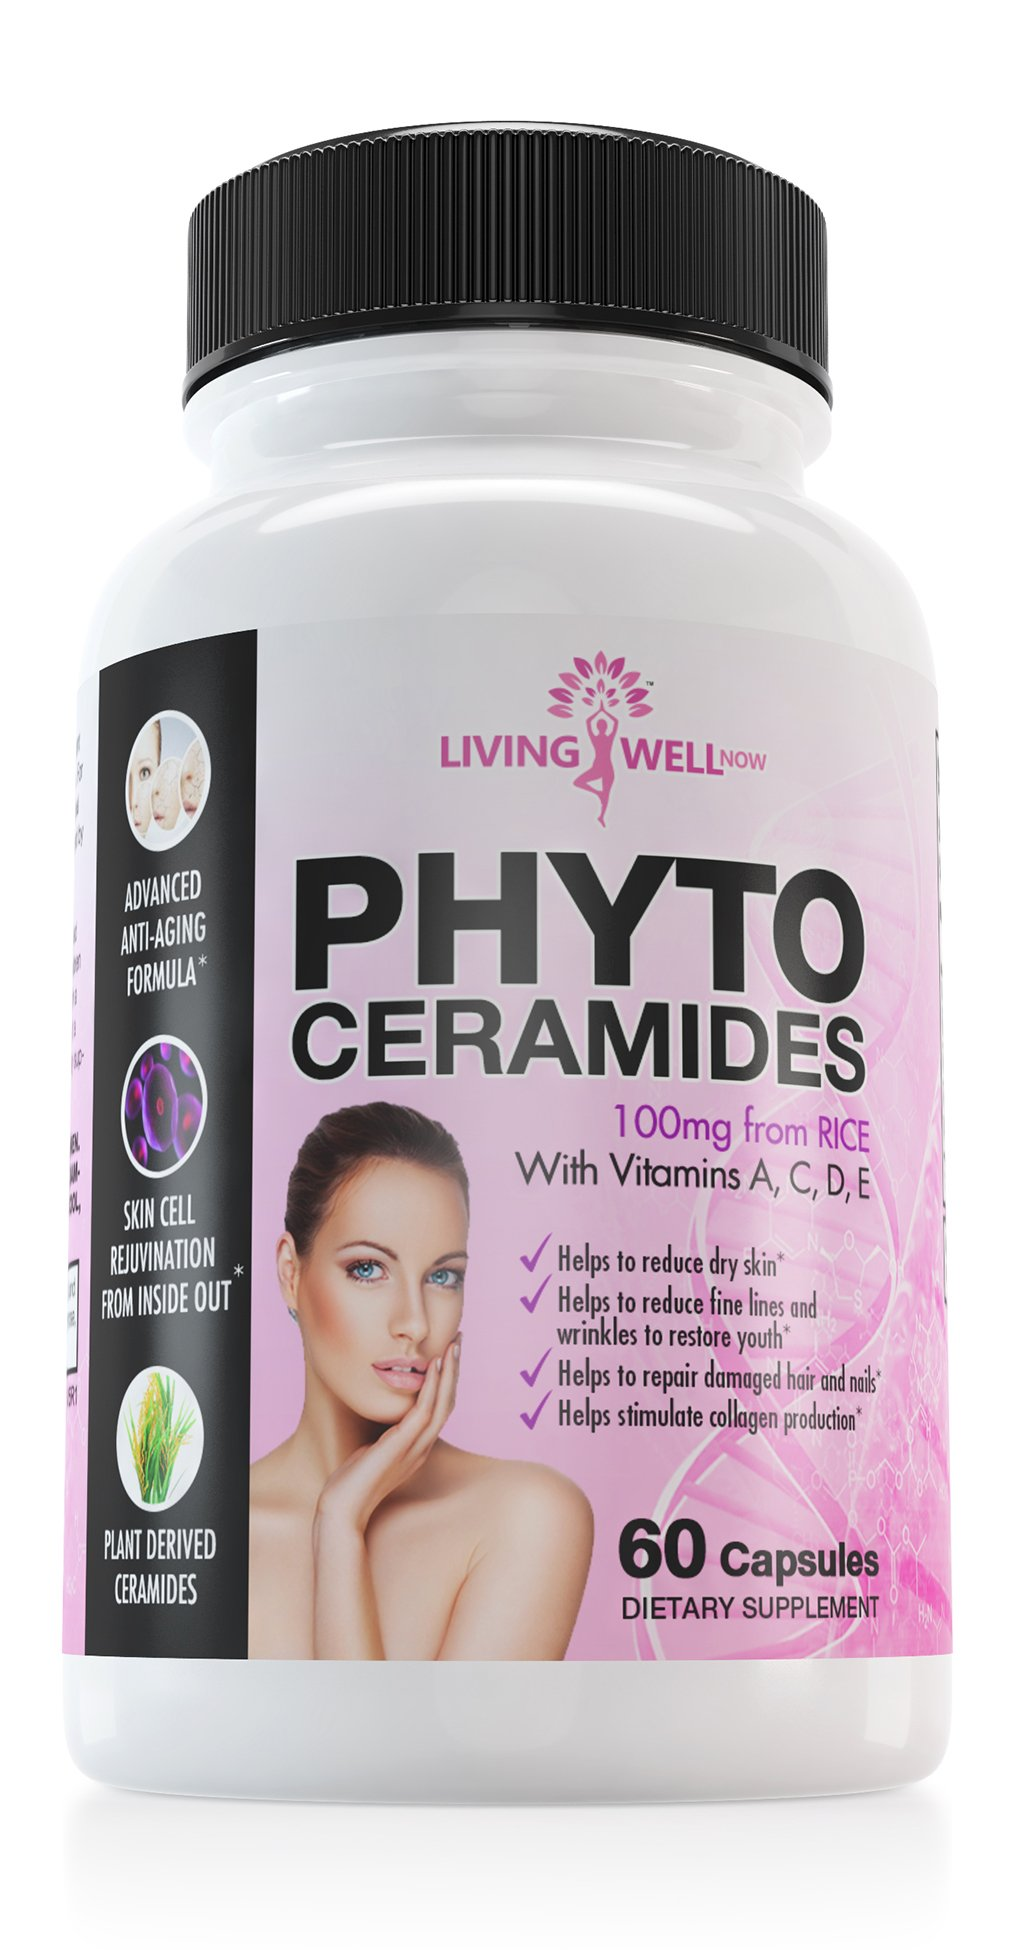 60 Phytoceramides Pills. Natural Anti Aging and Anti Wrinkle Supplement with ACDE. Promotes Skin Tightening & Cell Renewal. Plant-Derived Rice Based. Reduce Wrinkles, Fine Lines and Dry Skin